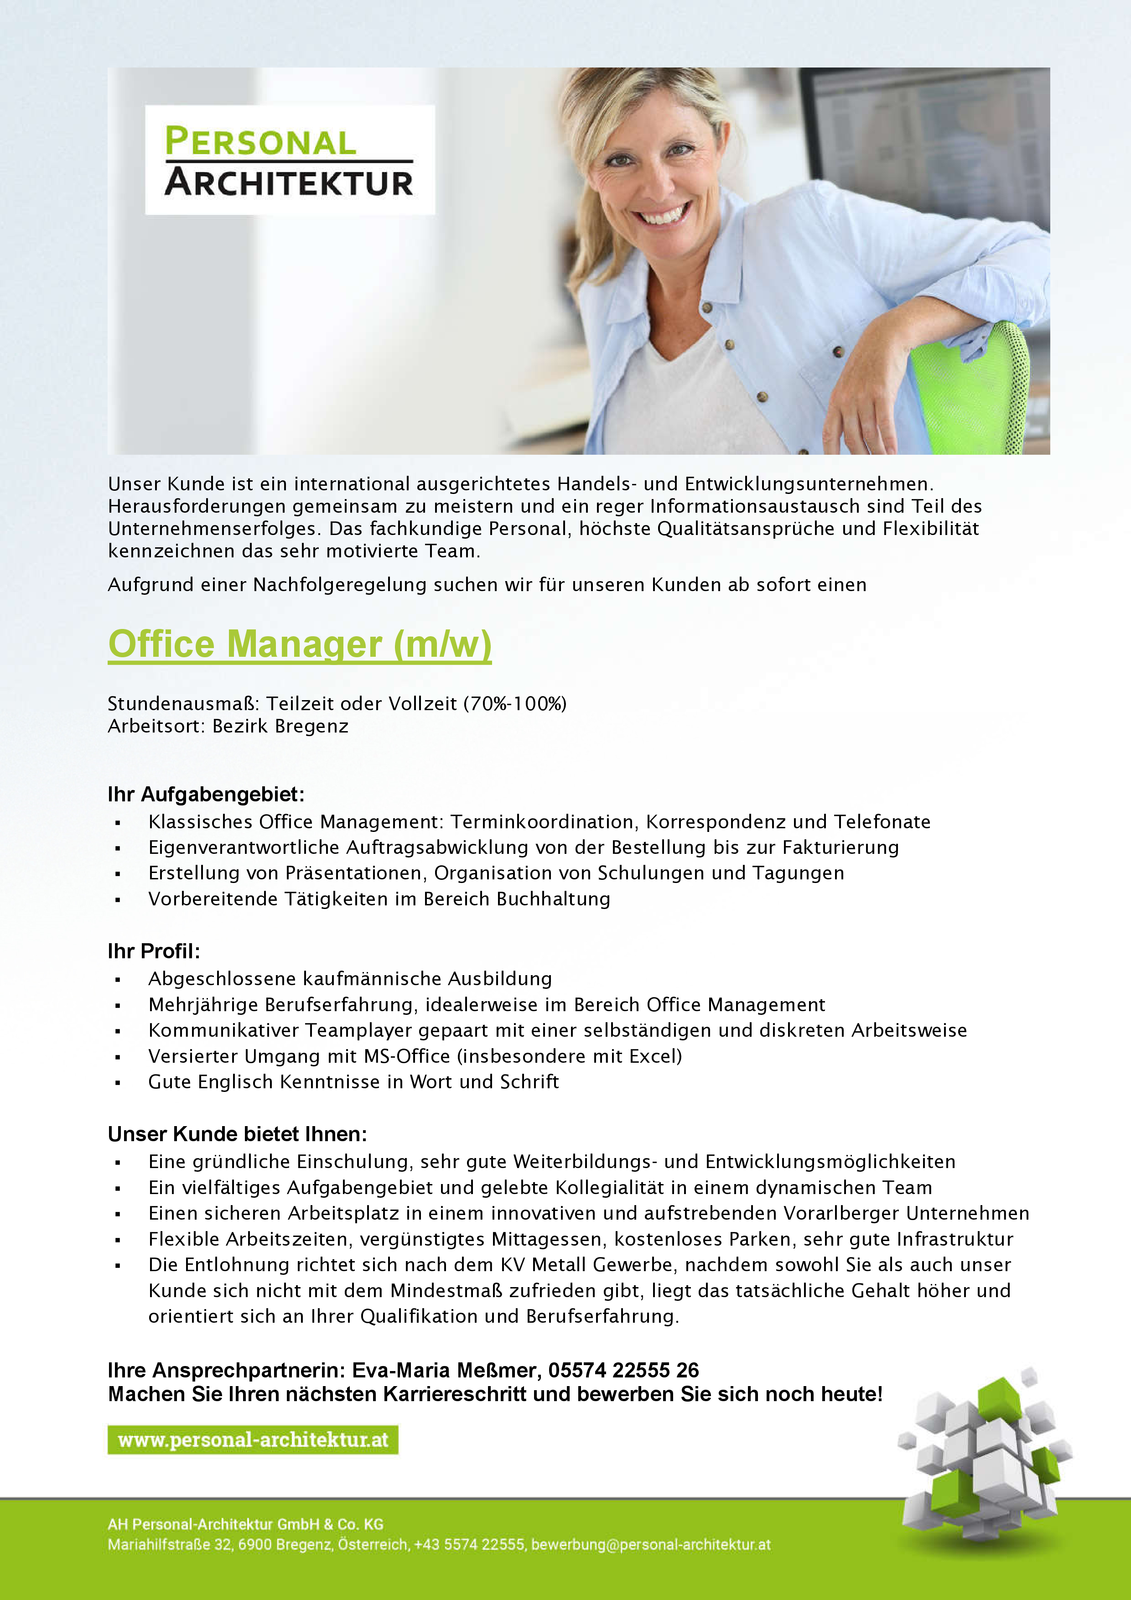 Office Manager m/w